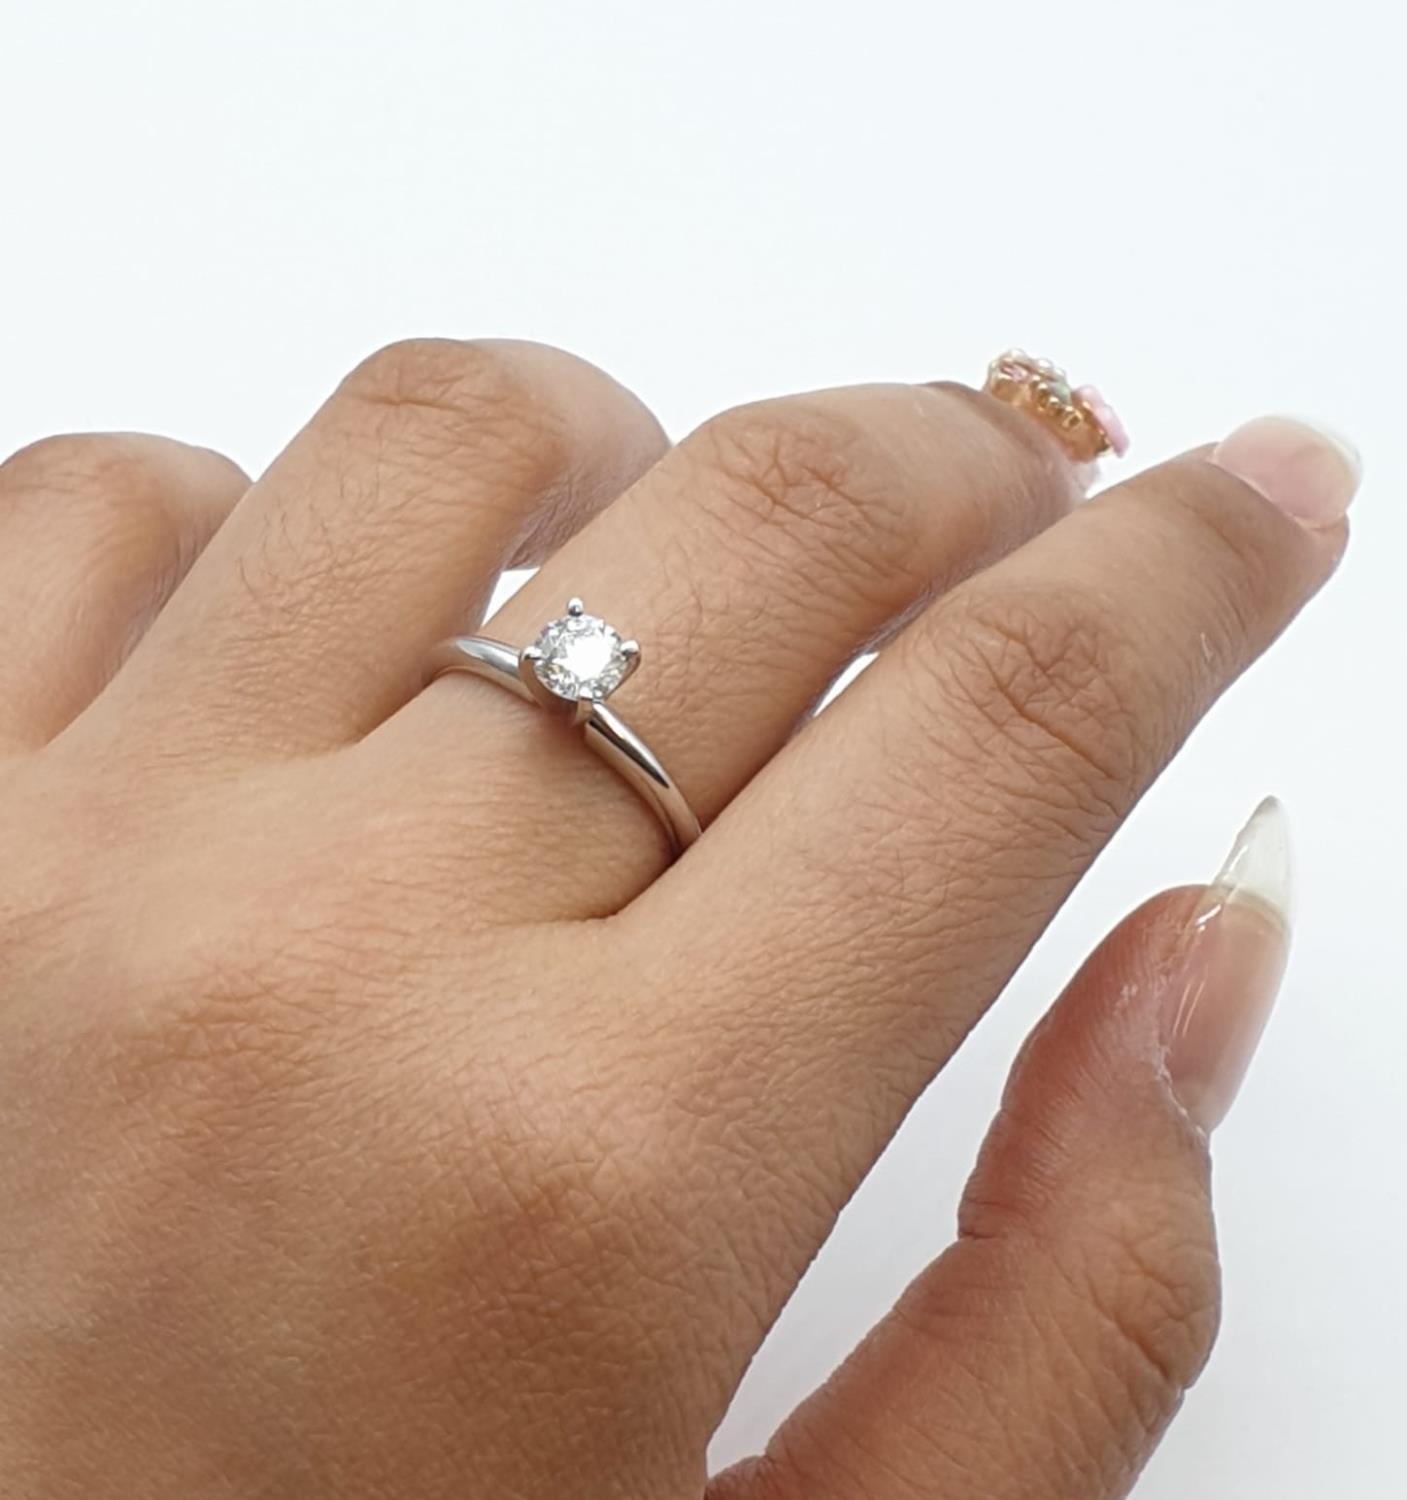 14ct white gold with 0.56ct diamond solitaire ring (round brilliant cut, colour H, clarity SI1 - Image 13 of 18